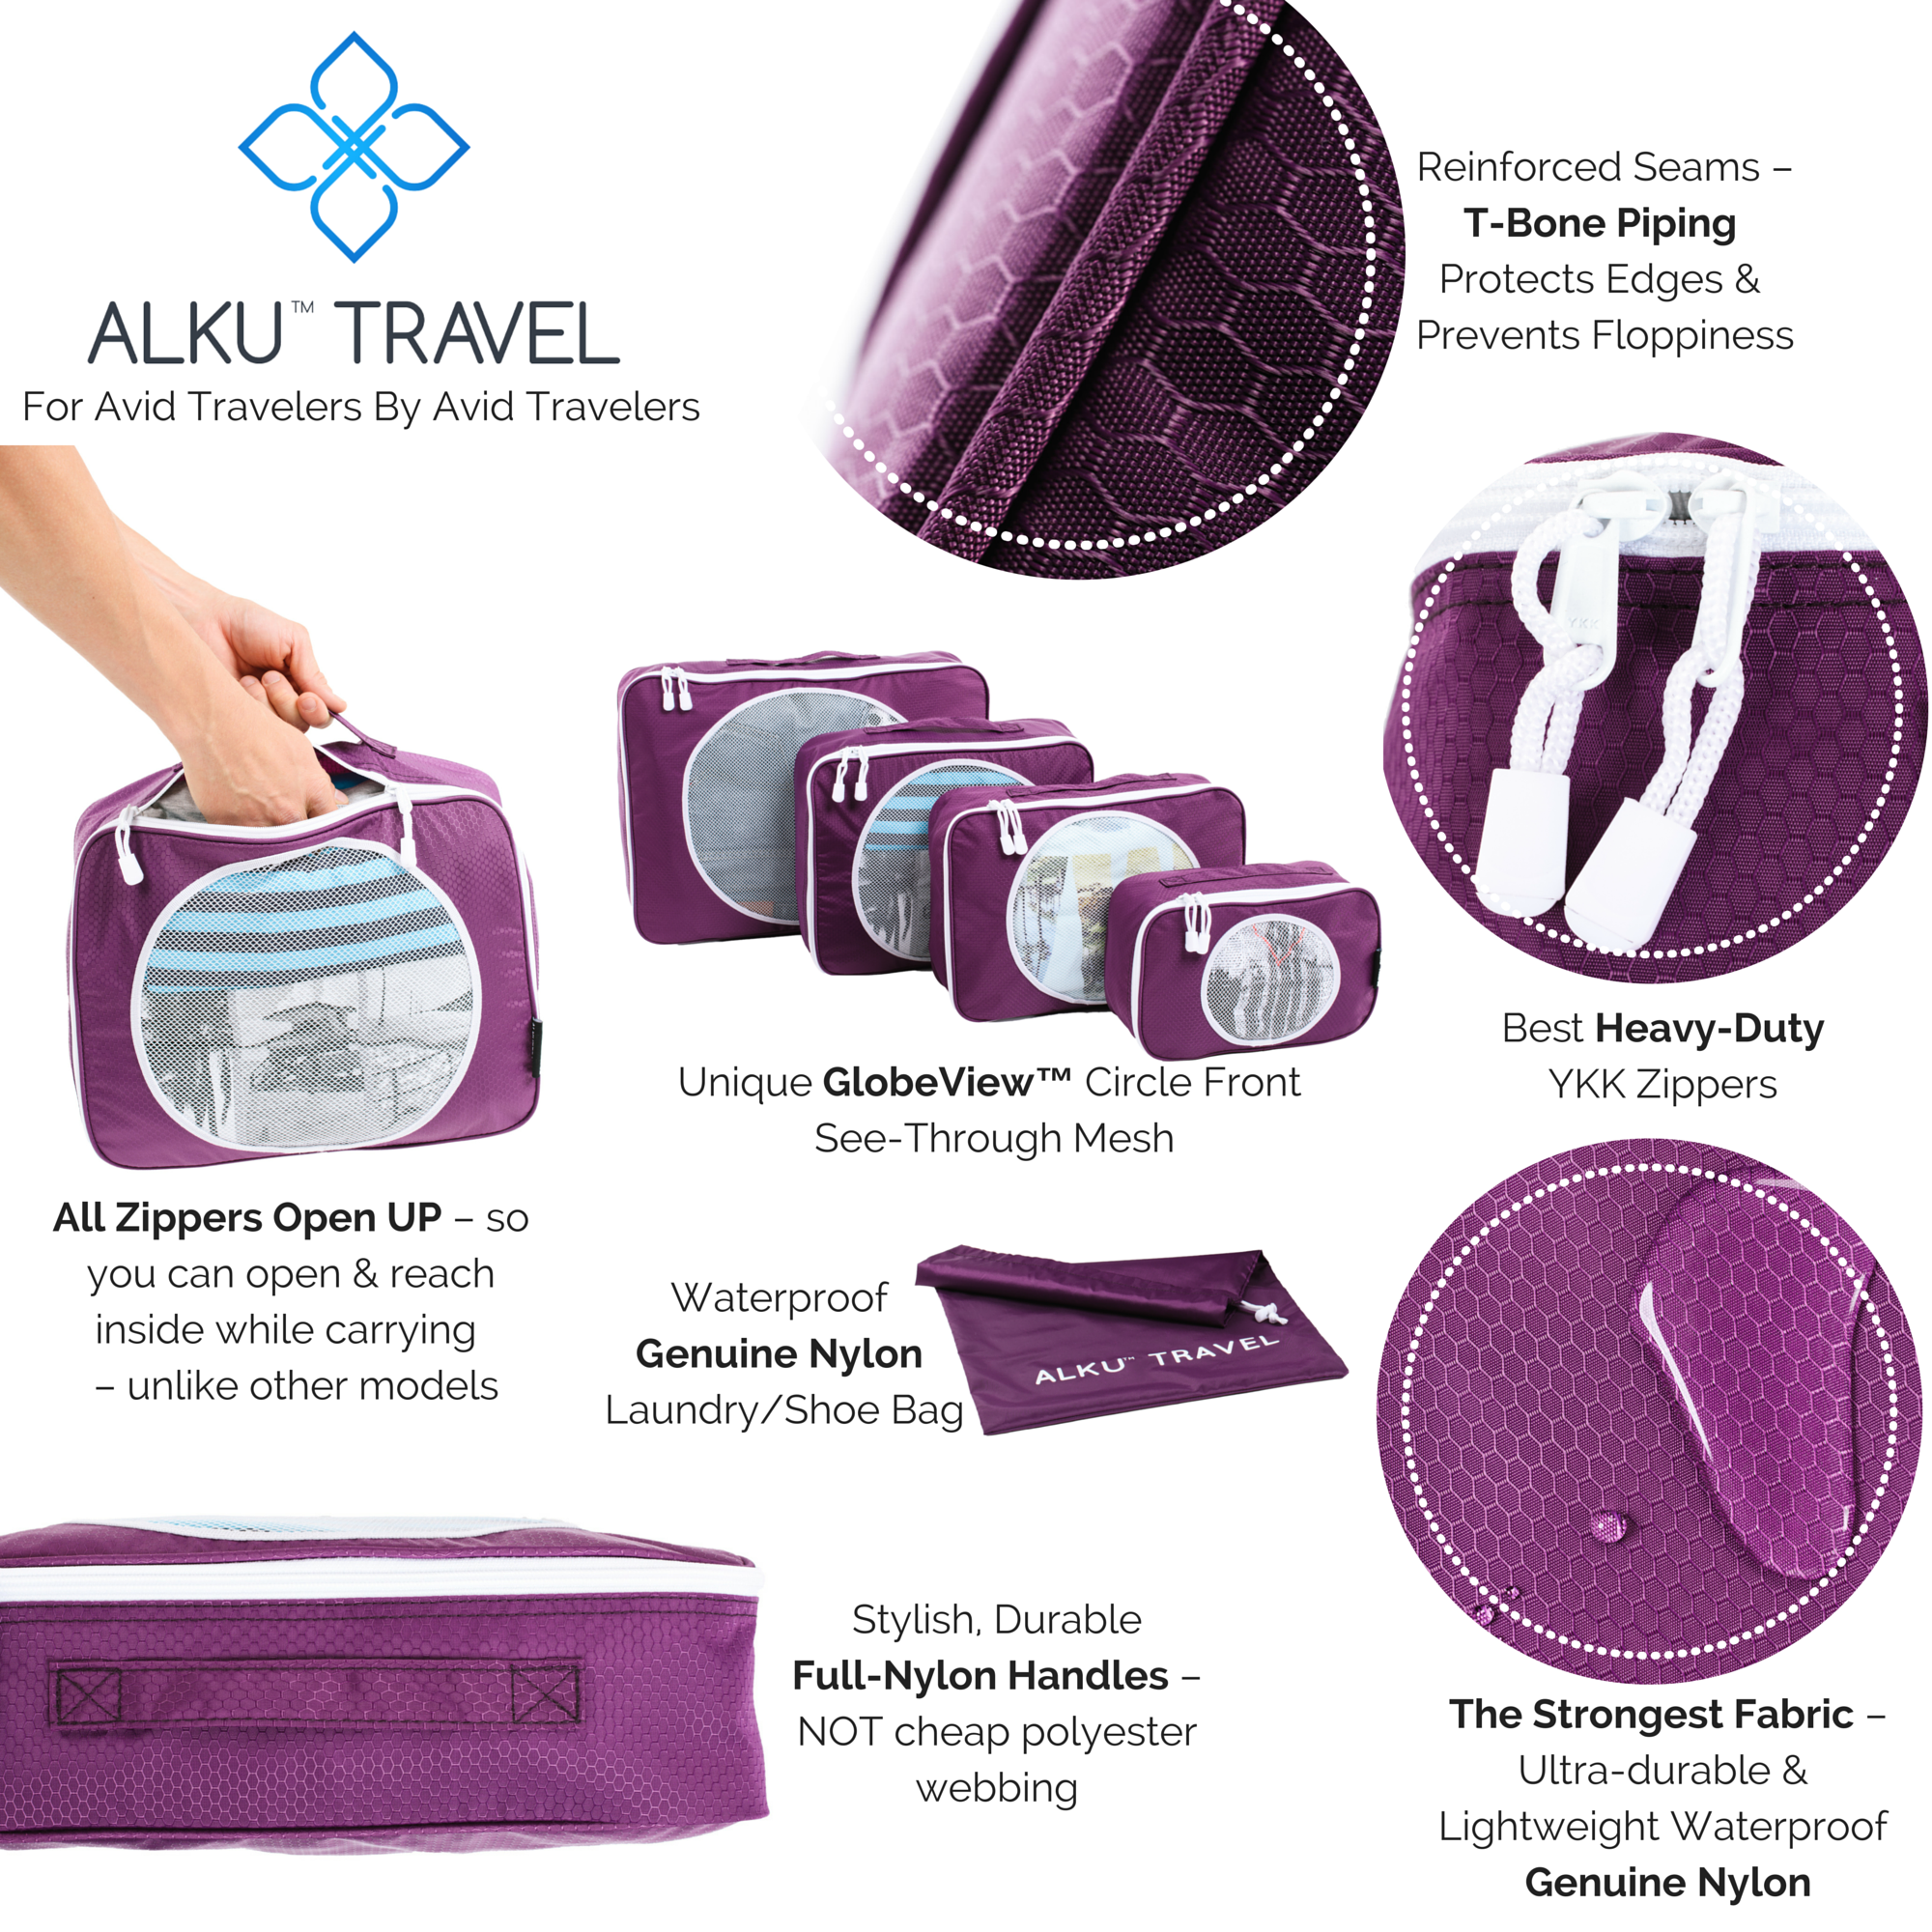 The features that make the Alku Travel organizers the best packing cubes